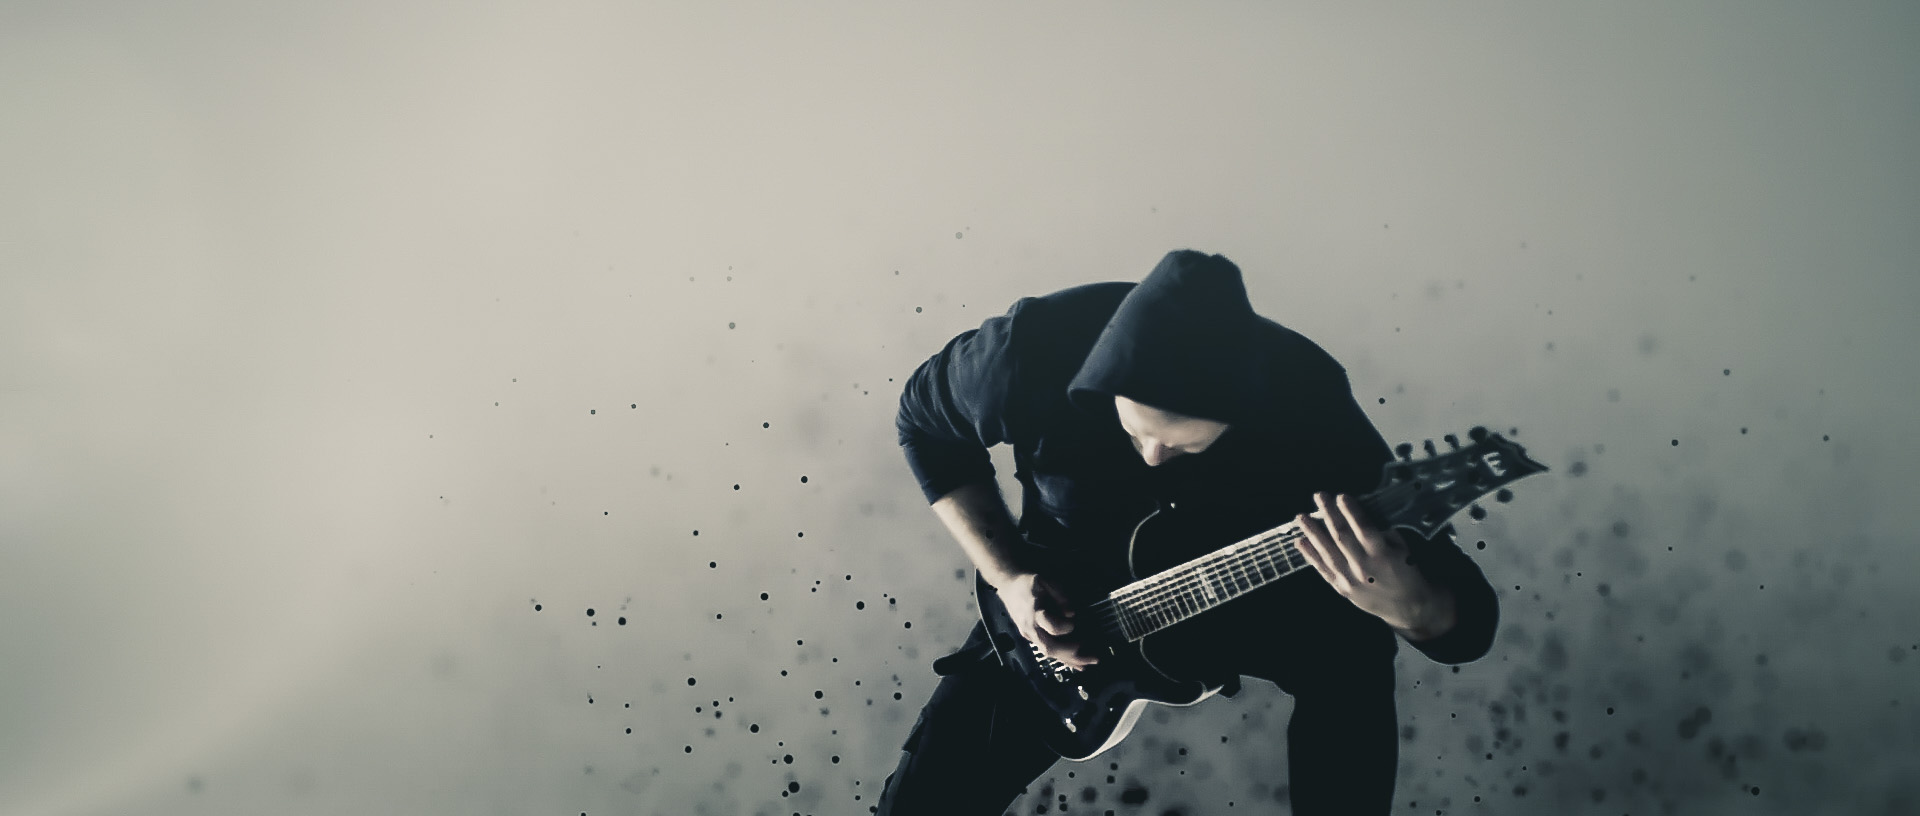 Metal Guitarist and particles